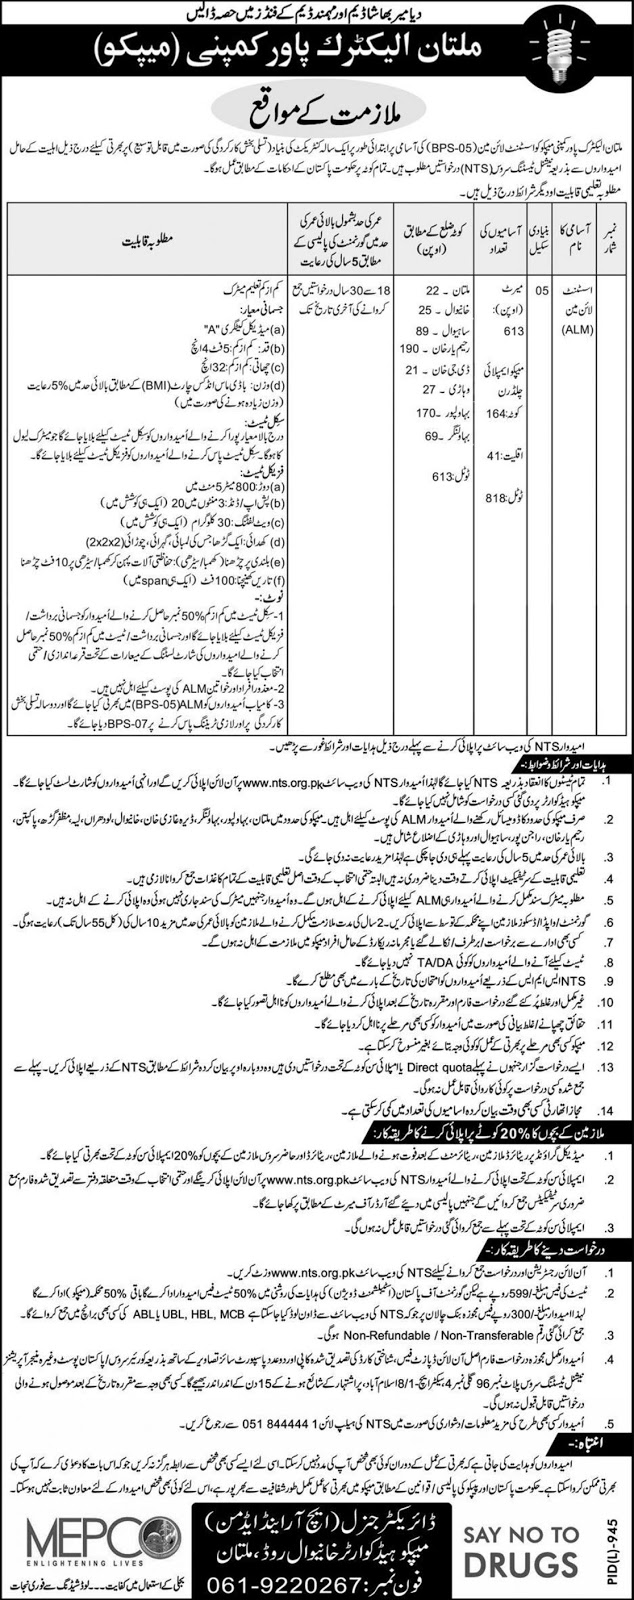 wapda jobs 2019,wapda jobs,mepco jobs,wapda jobs 2019 punjab,jobs in pakistan,wapda jobs 2019 application form,jobs,wapda jobs 2018,wapda new jobs 2019,govt jobs 2019,mepco jobs 2019,nts jobs 2019,new jobs in wapda,new jobs in wapda 2019,nts jobs,wapda latest jobs 2019,lesco jobs 2019,new jobs,ppsc jobs,lesco jobs,jobs in wapda 2019,latest jobs in pakistan 2019,wapda jobs 2019 today